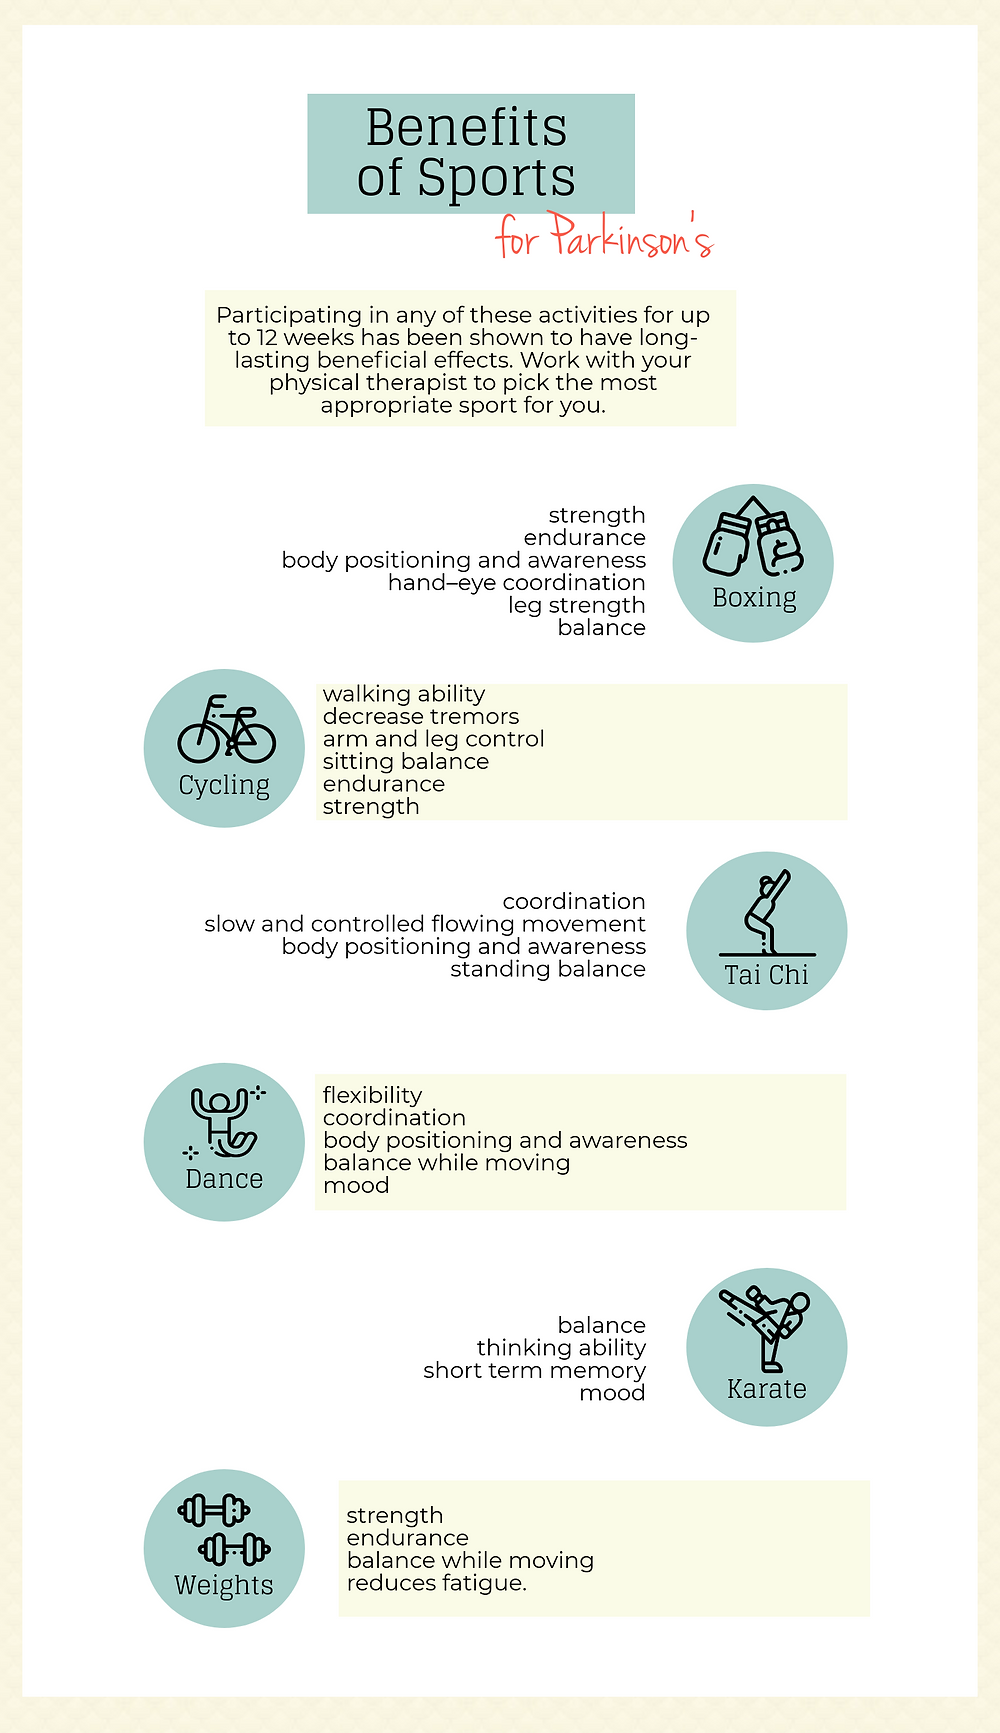 Benefits of Sports for Parkinson's